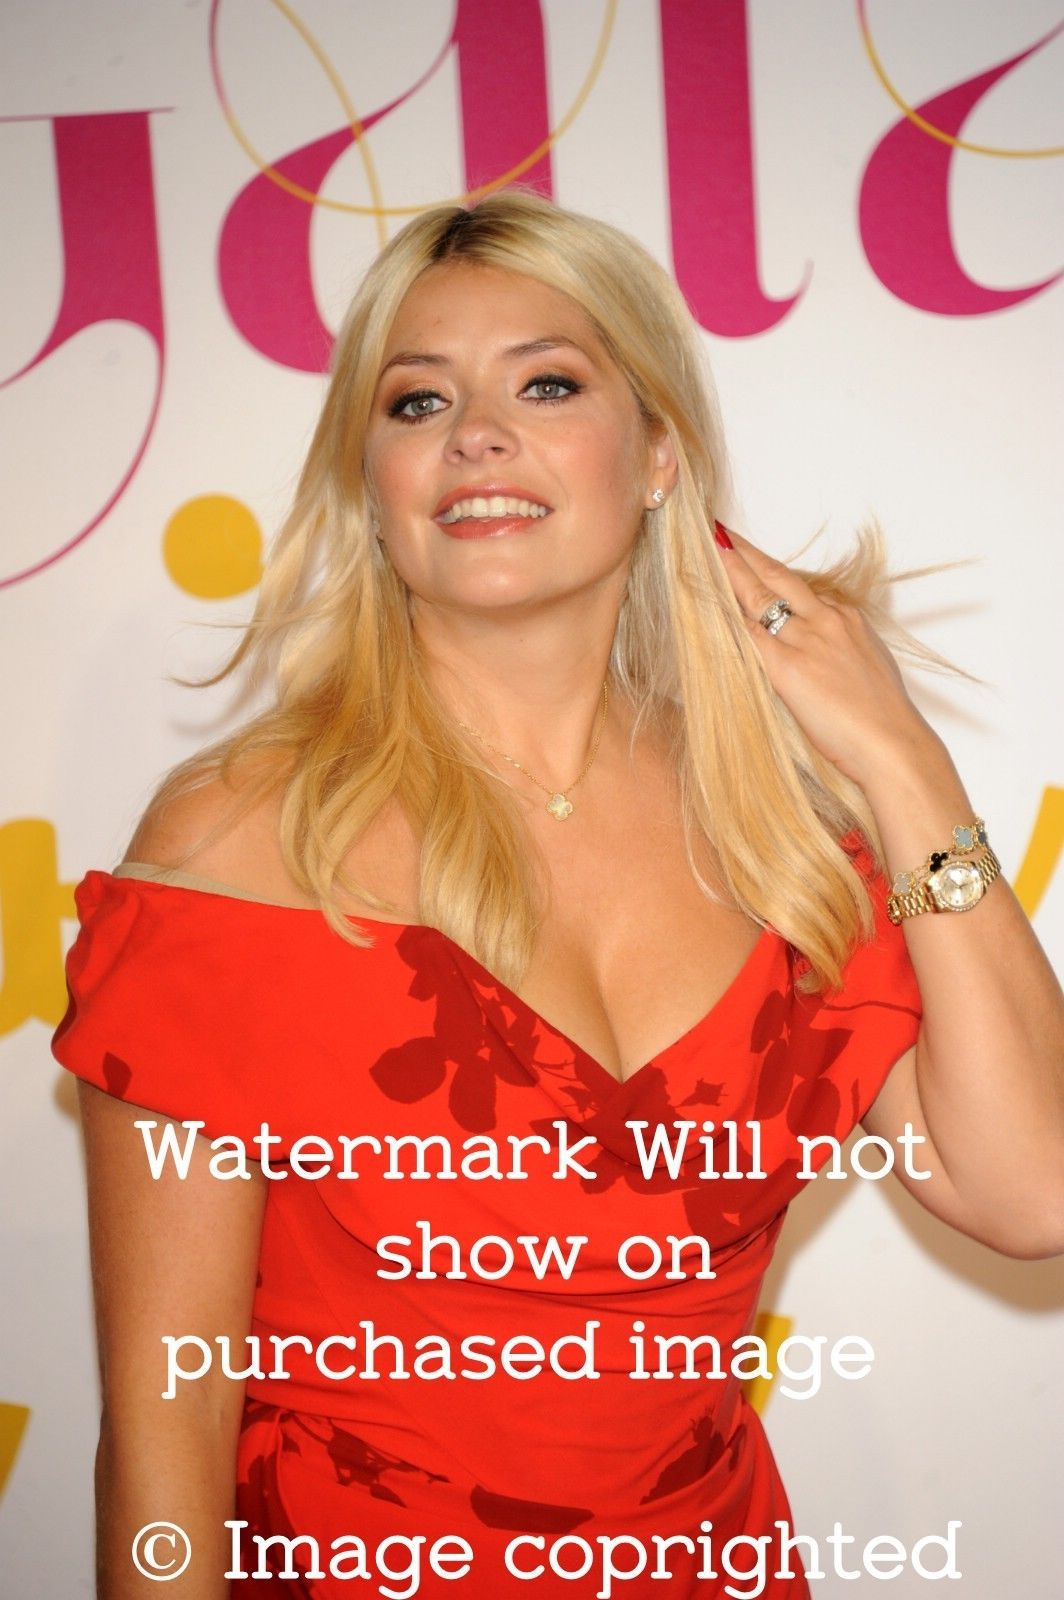 Holly Willoughby Poster Picture Photo Print A2 A3 A4 7X5 6X4